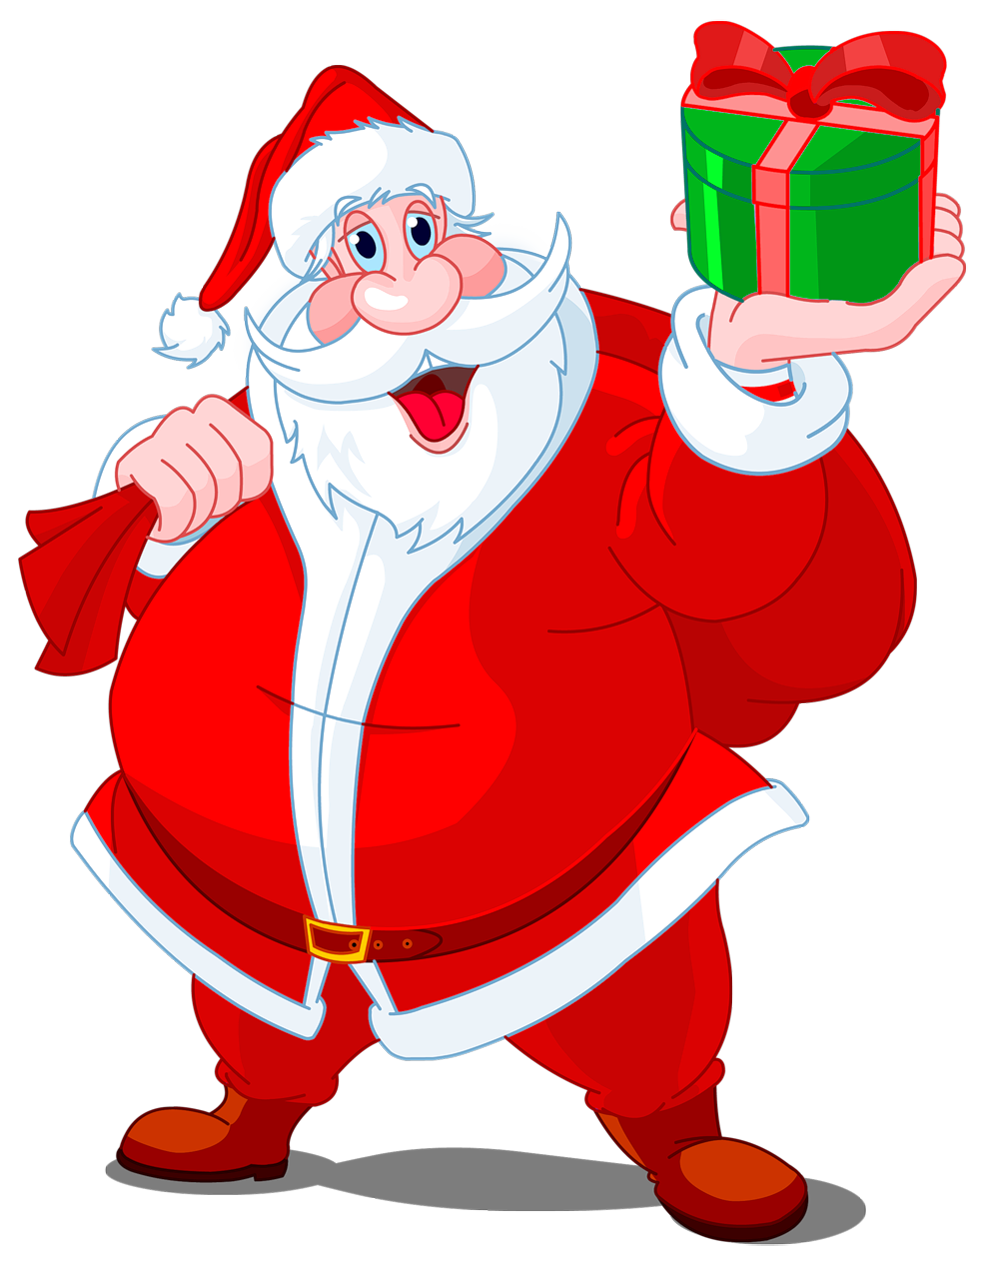 Transparent Santa Claus with .